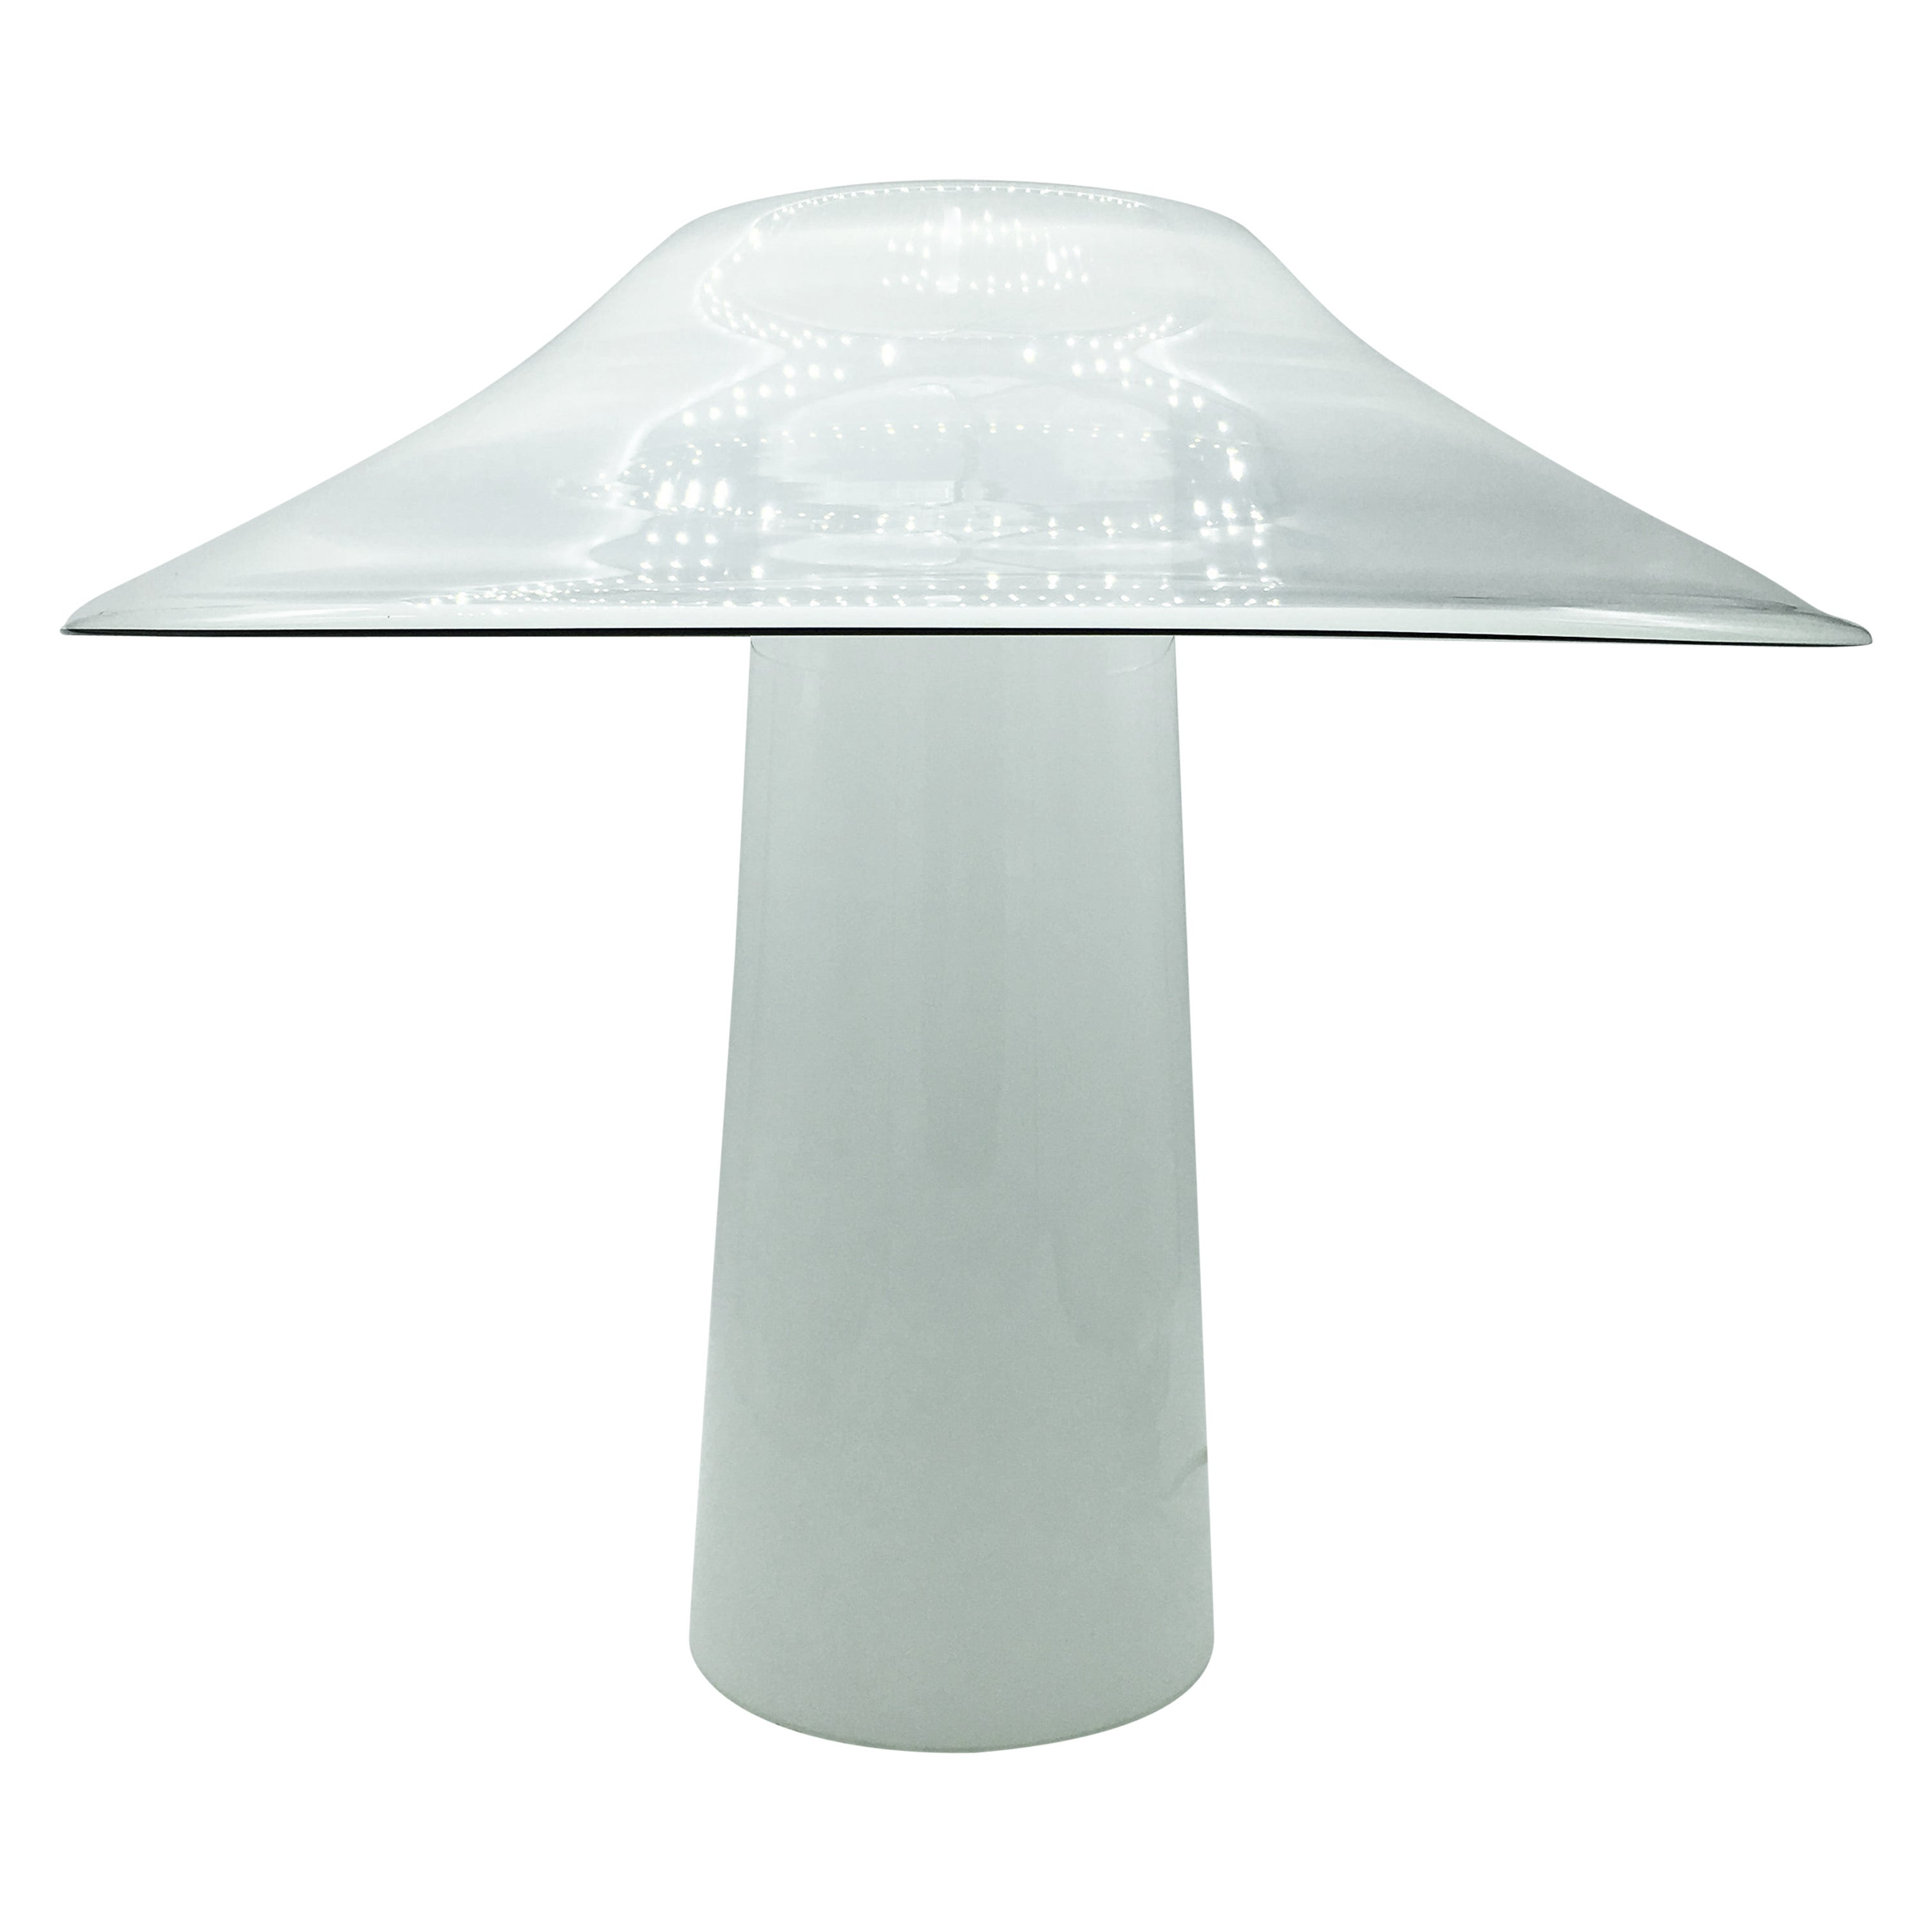 1970s Rare White Murano Glass Table Lamp by ITRE